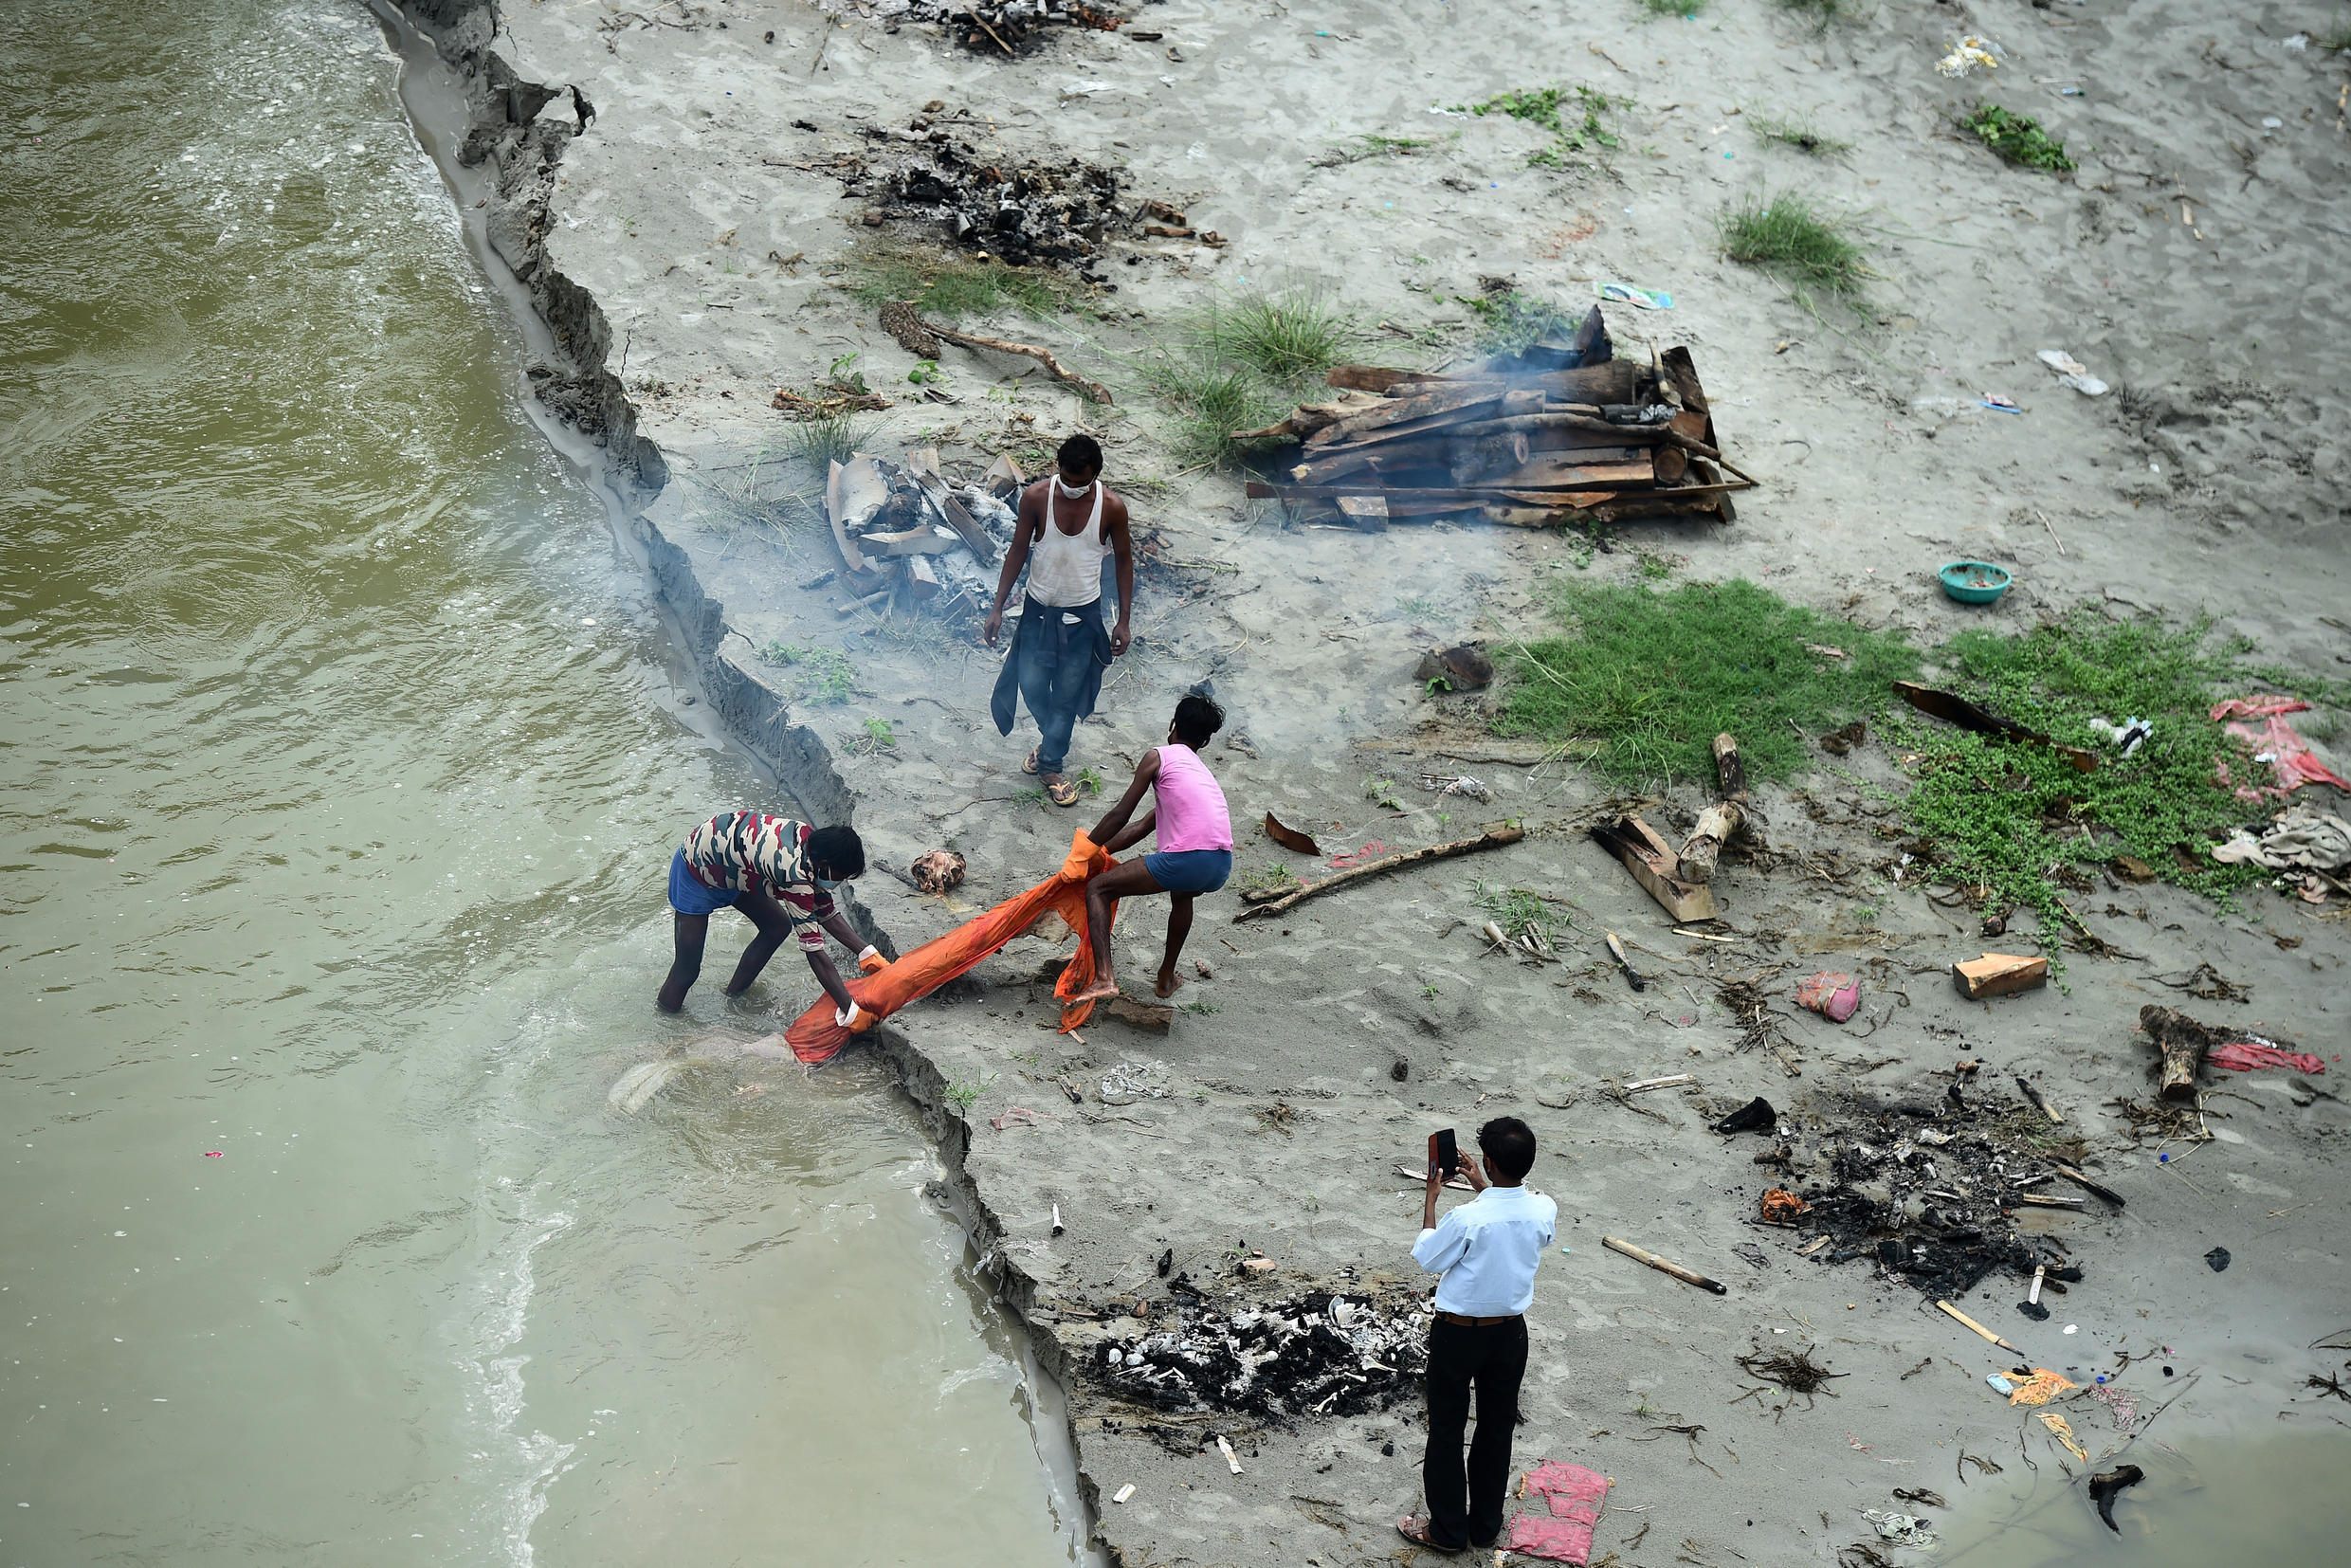 Annual monsoon rains are swelling the Ganges, washing away the sand and revealing corpses